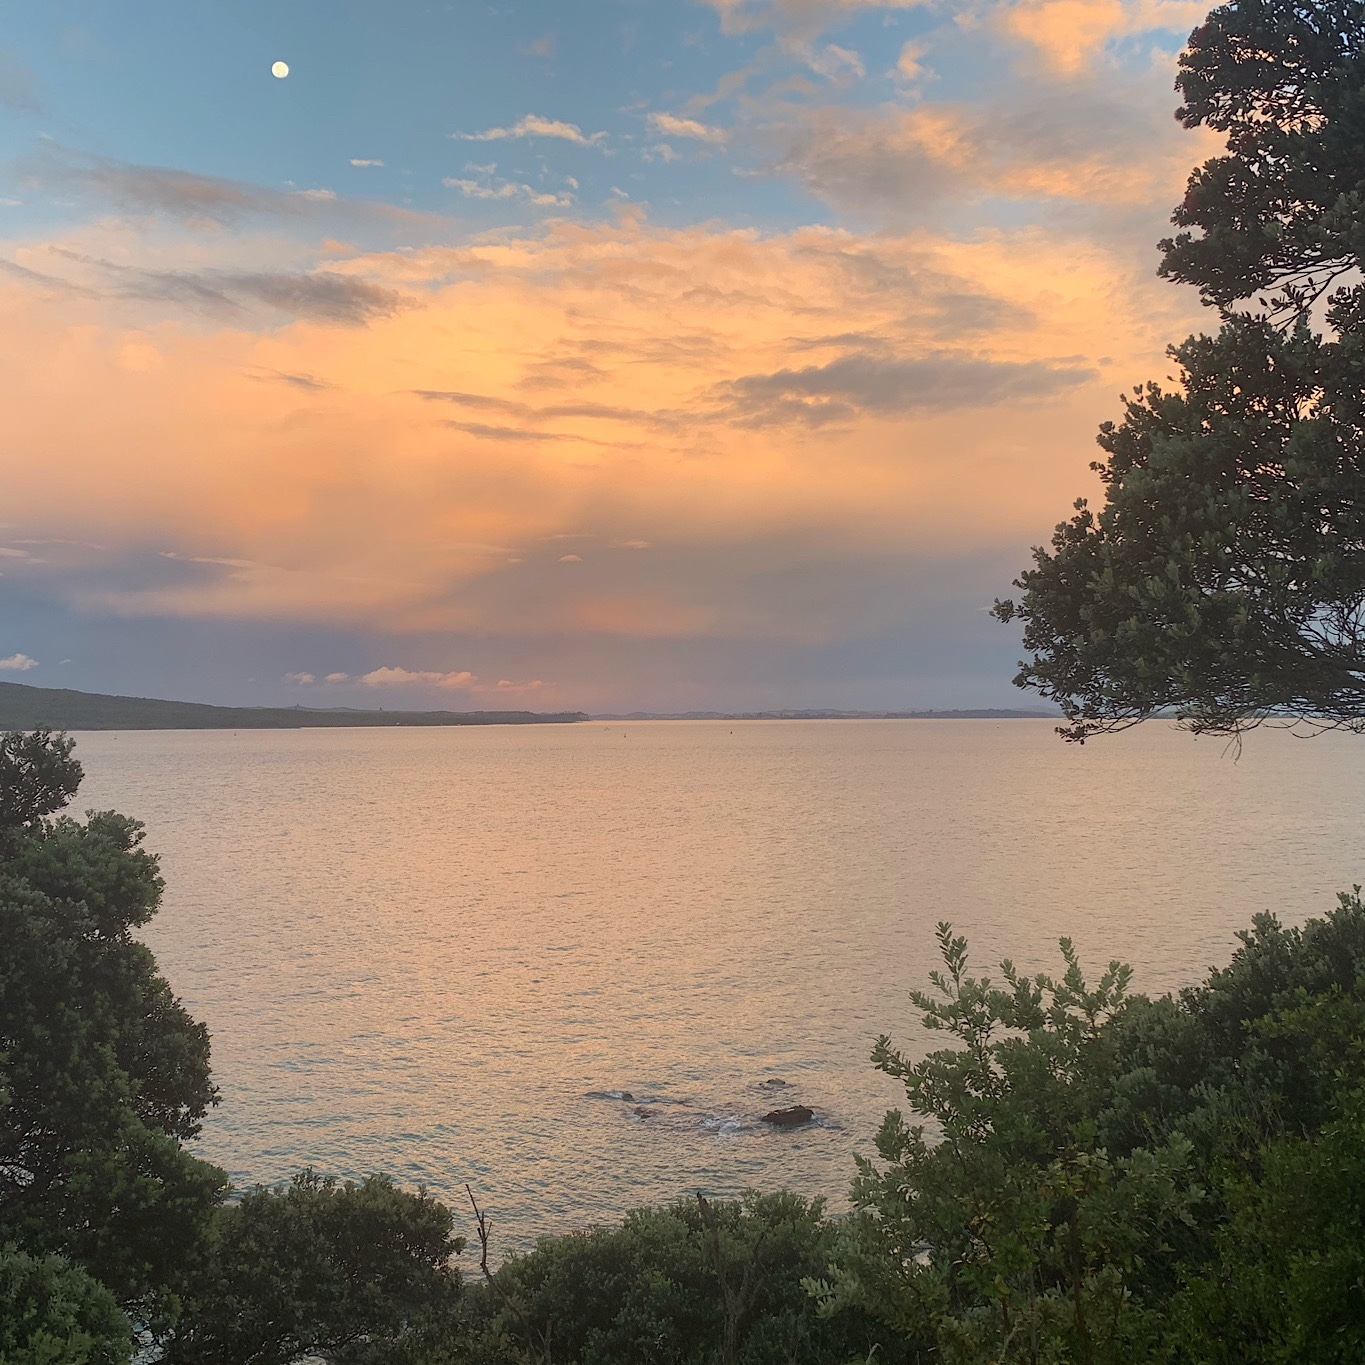 After pouring rain, the sun came out at North Head and gave me a gorgeous sunset and moon.